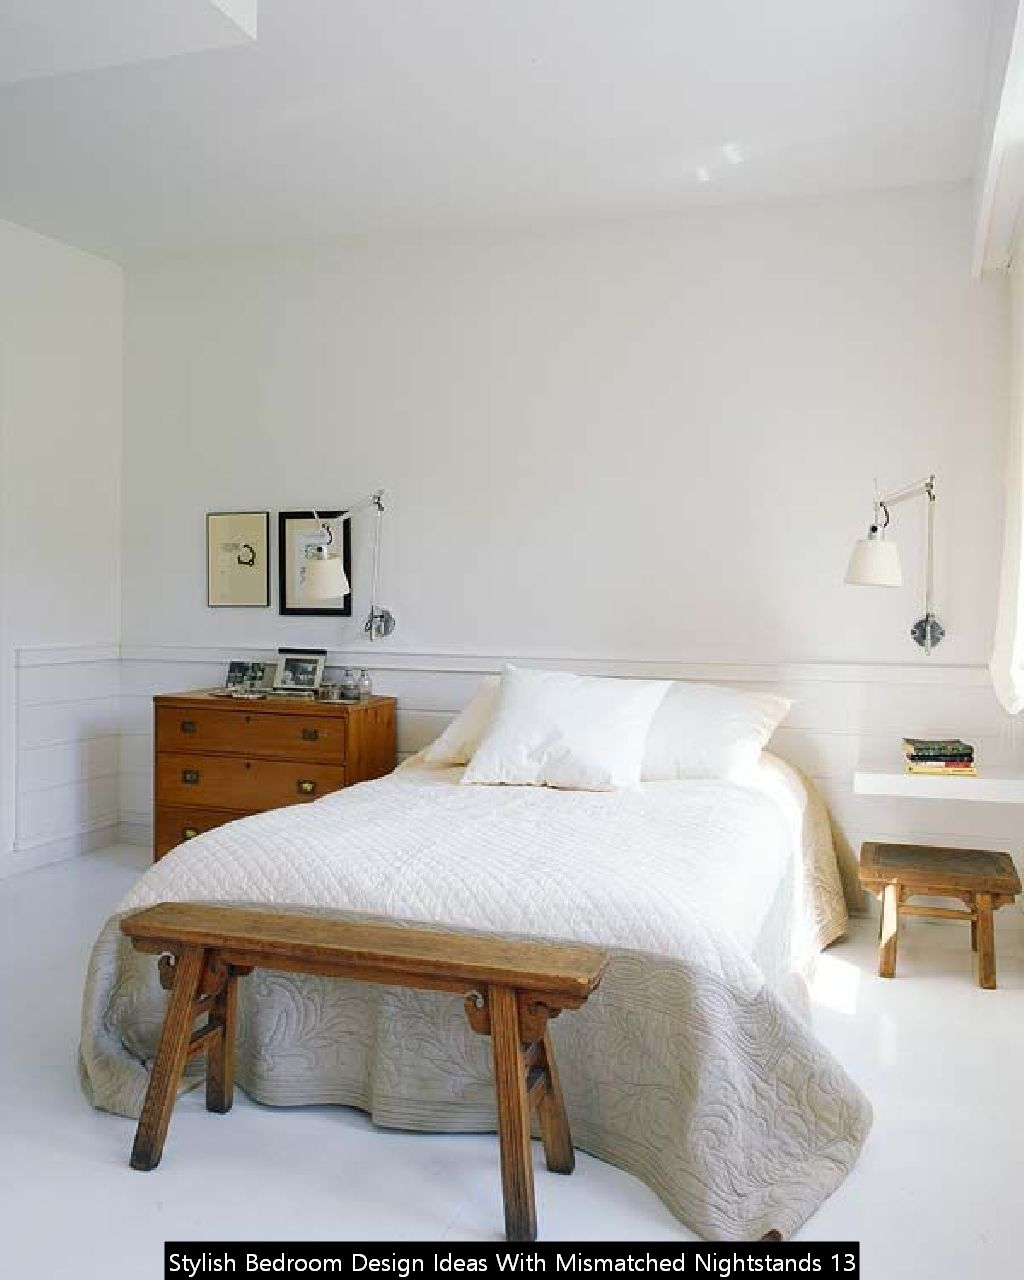 Stylish Bedroom Design Ideas With Mismatched Nightstands 13